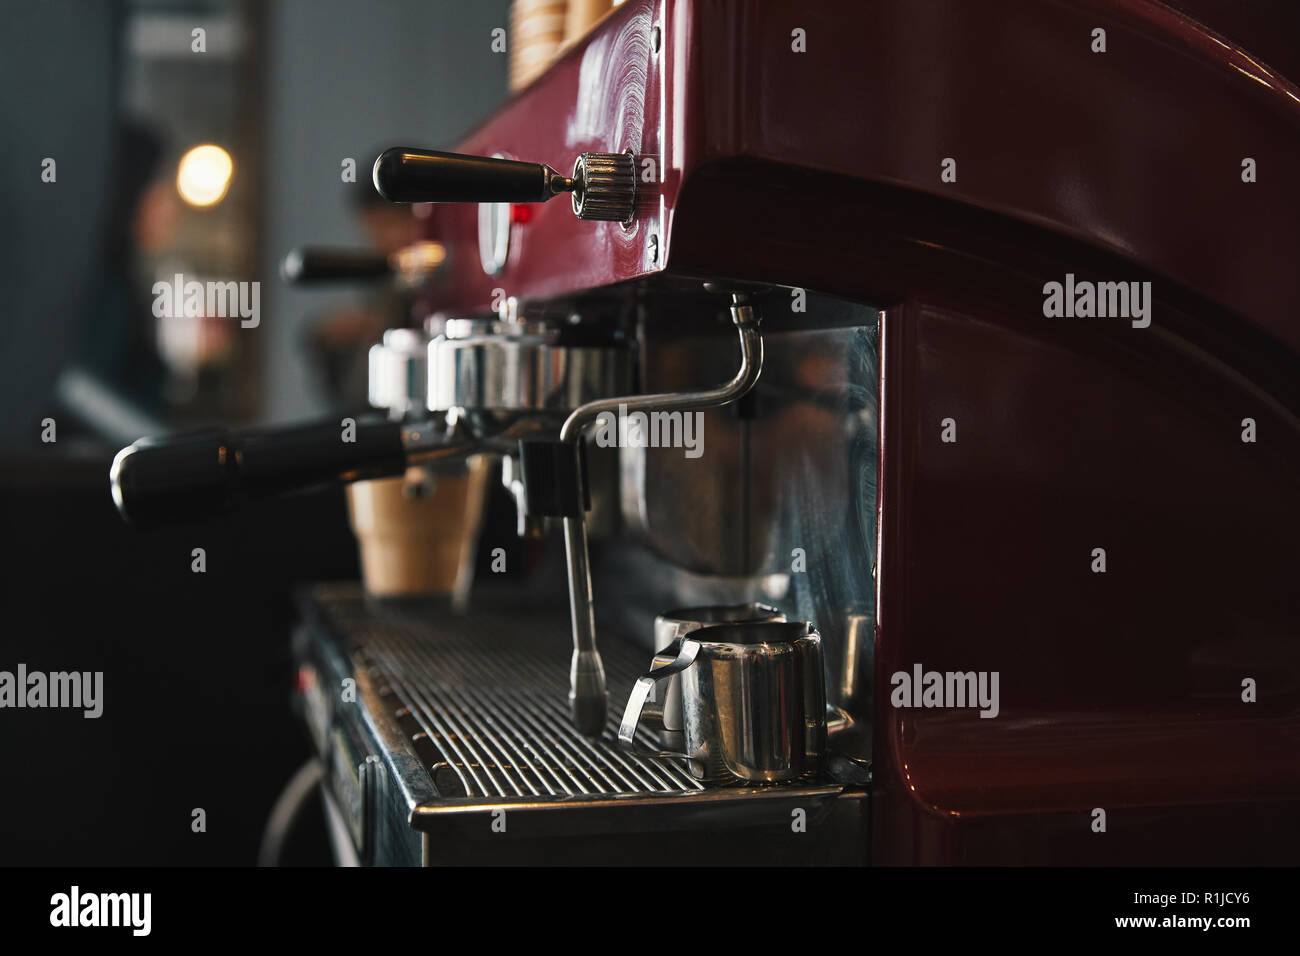 close-up view of professional coffee machine in coffeehouse - Stock Image